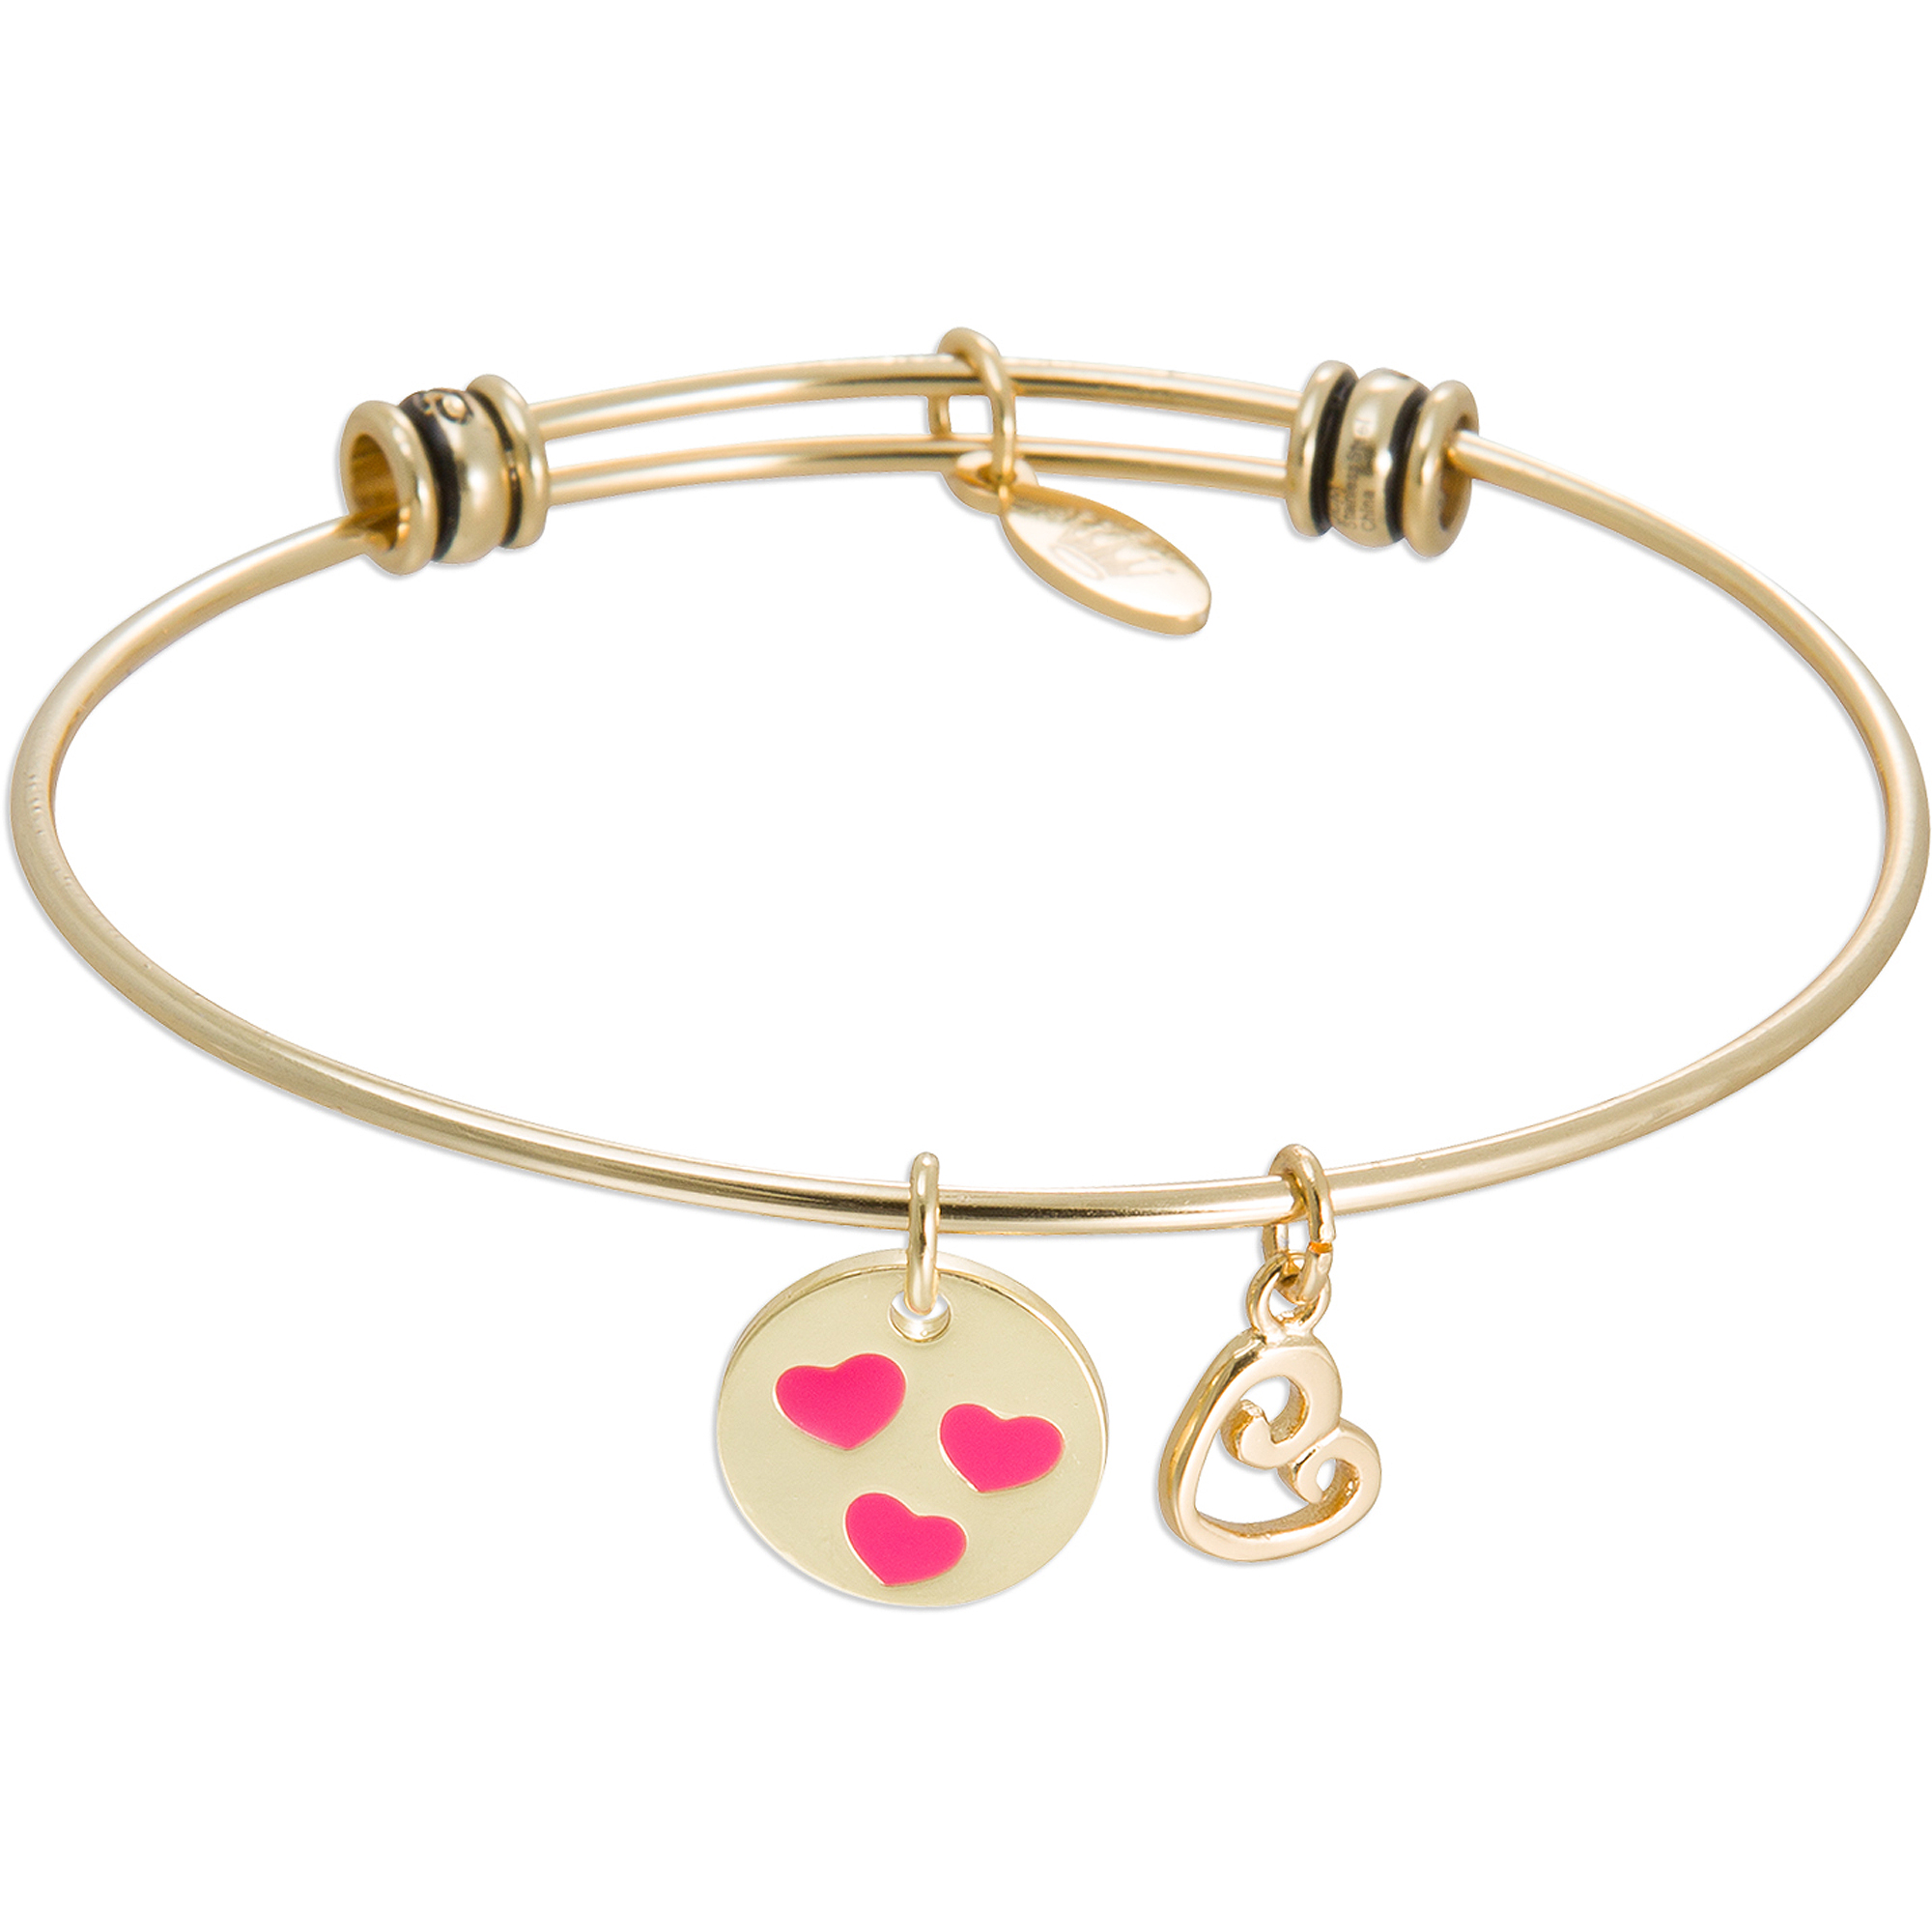 "Connections from Hallmark Stainless Steel Yellow-Tone ""Best Mom Ever"" and Heart Multi-Charm Wire Bangle, 7.75"